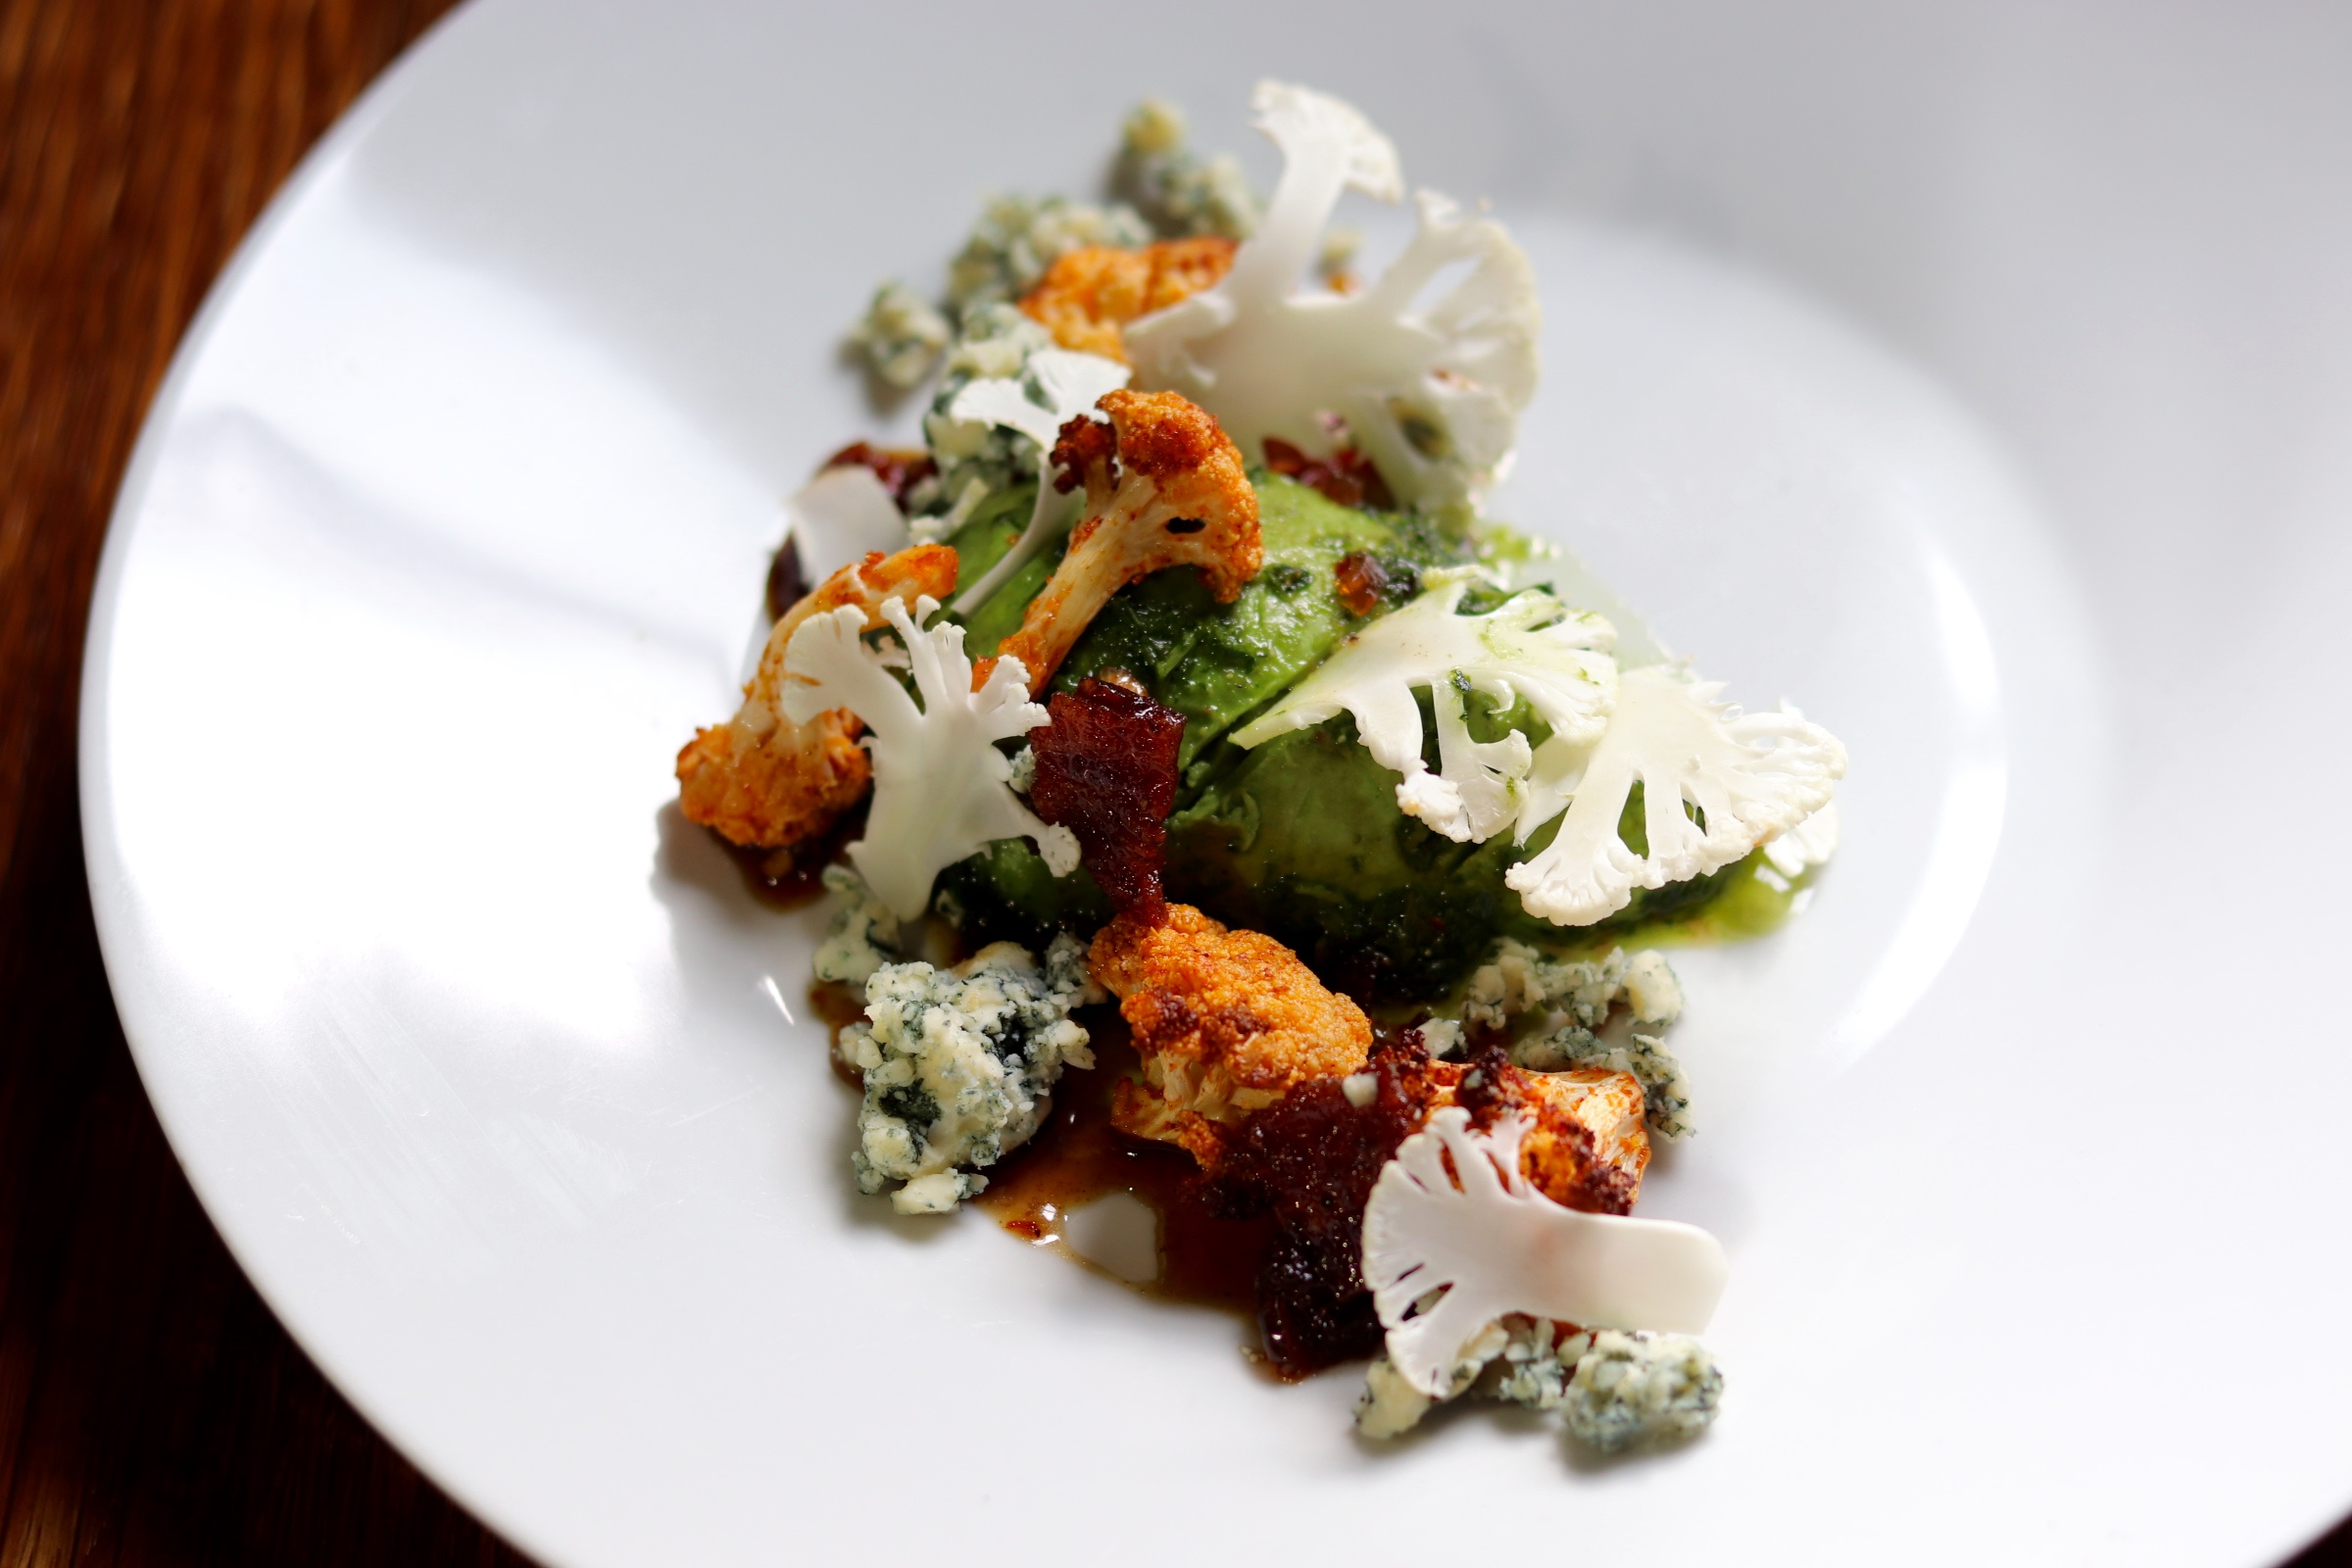 A special dish made for Easy Elegance by Chef Sara Bradley of Top Chef Kentucky